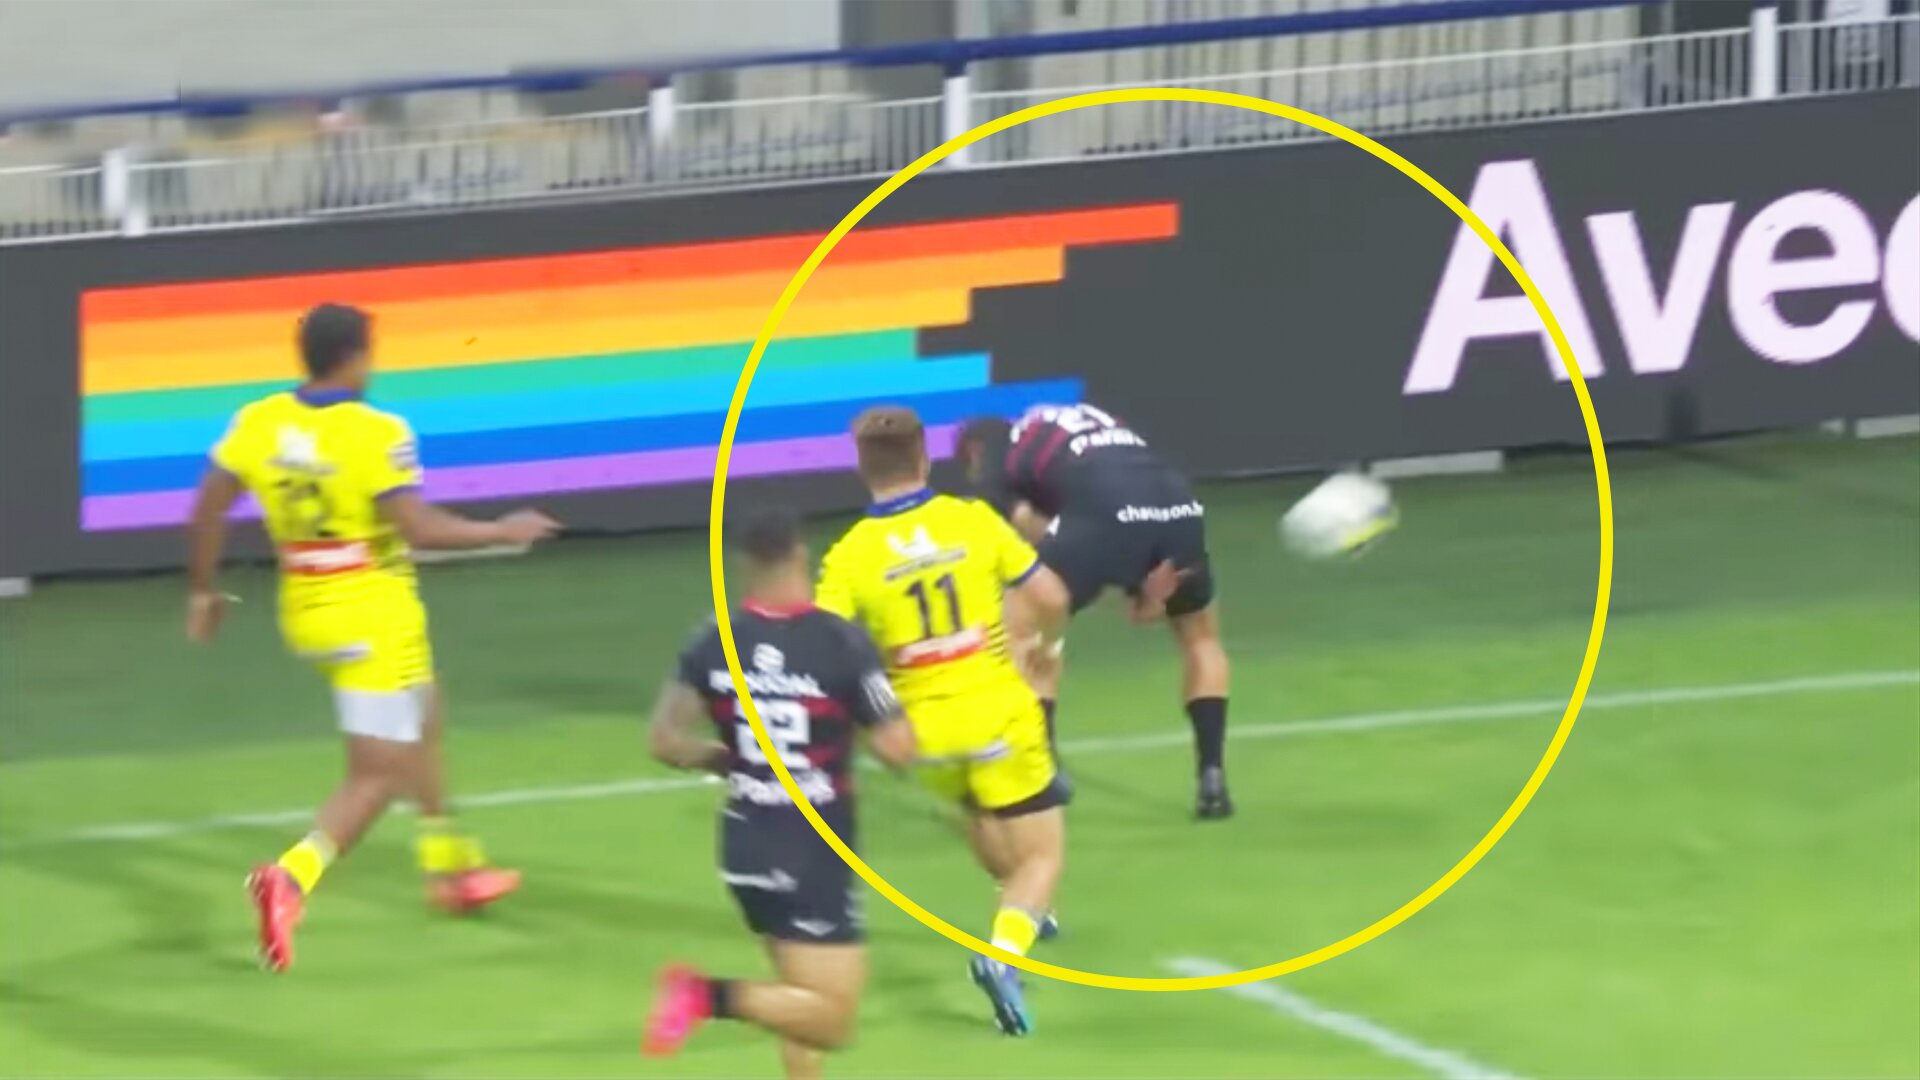 French fans stunned by 'pass of the season' that sets up match winning length of the field try in Top 14 clash